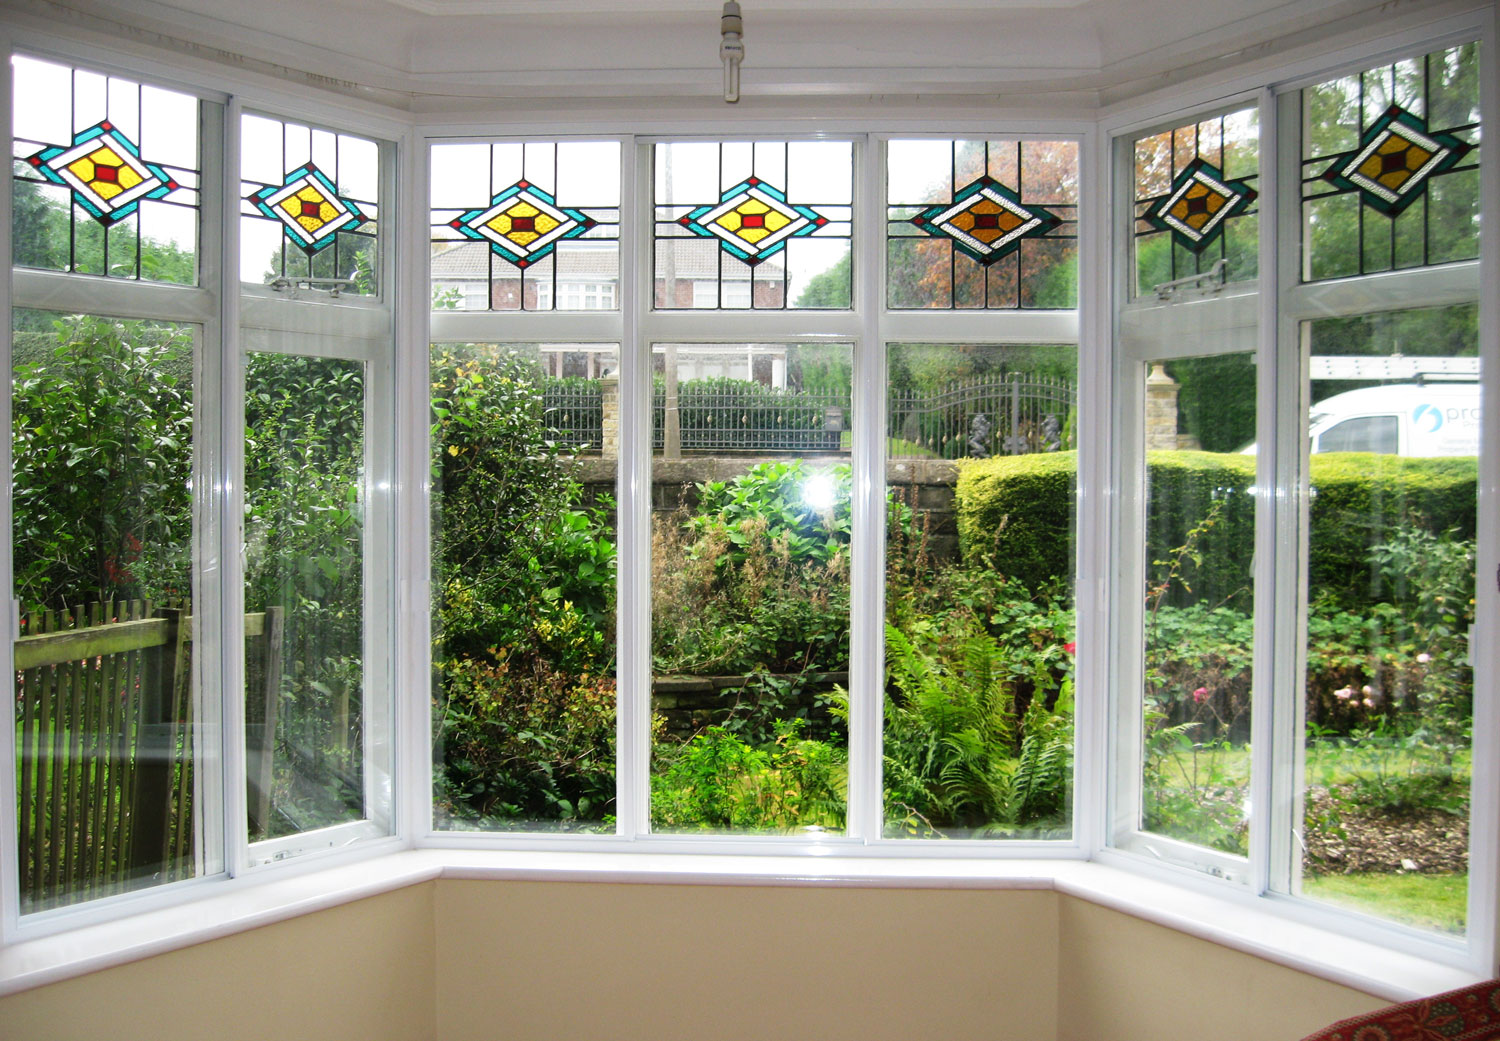 How much does secondary glazing cost?